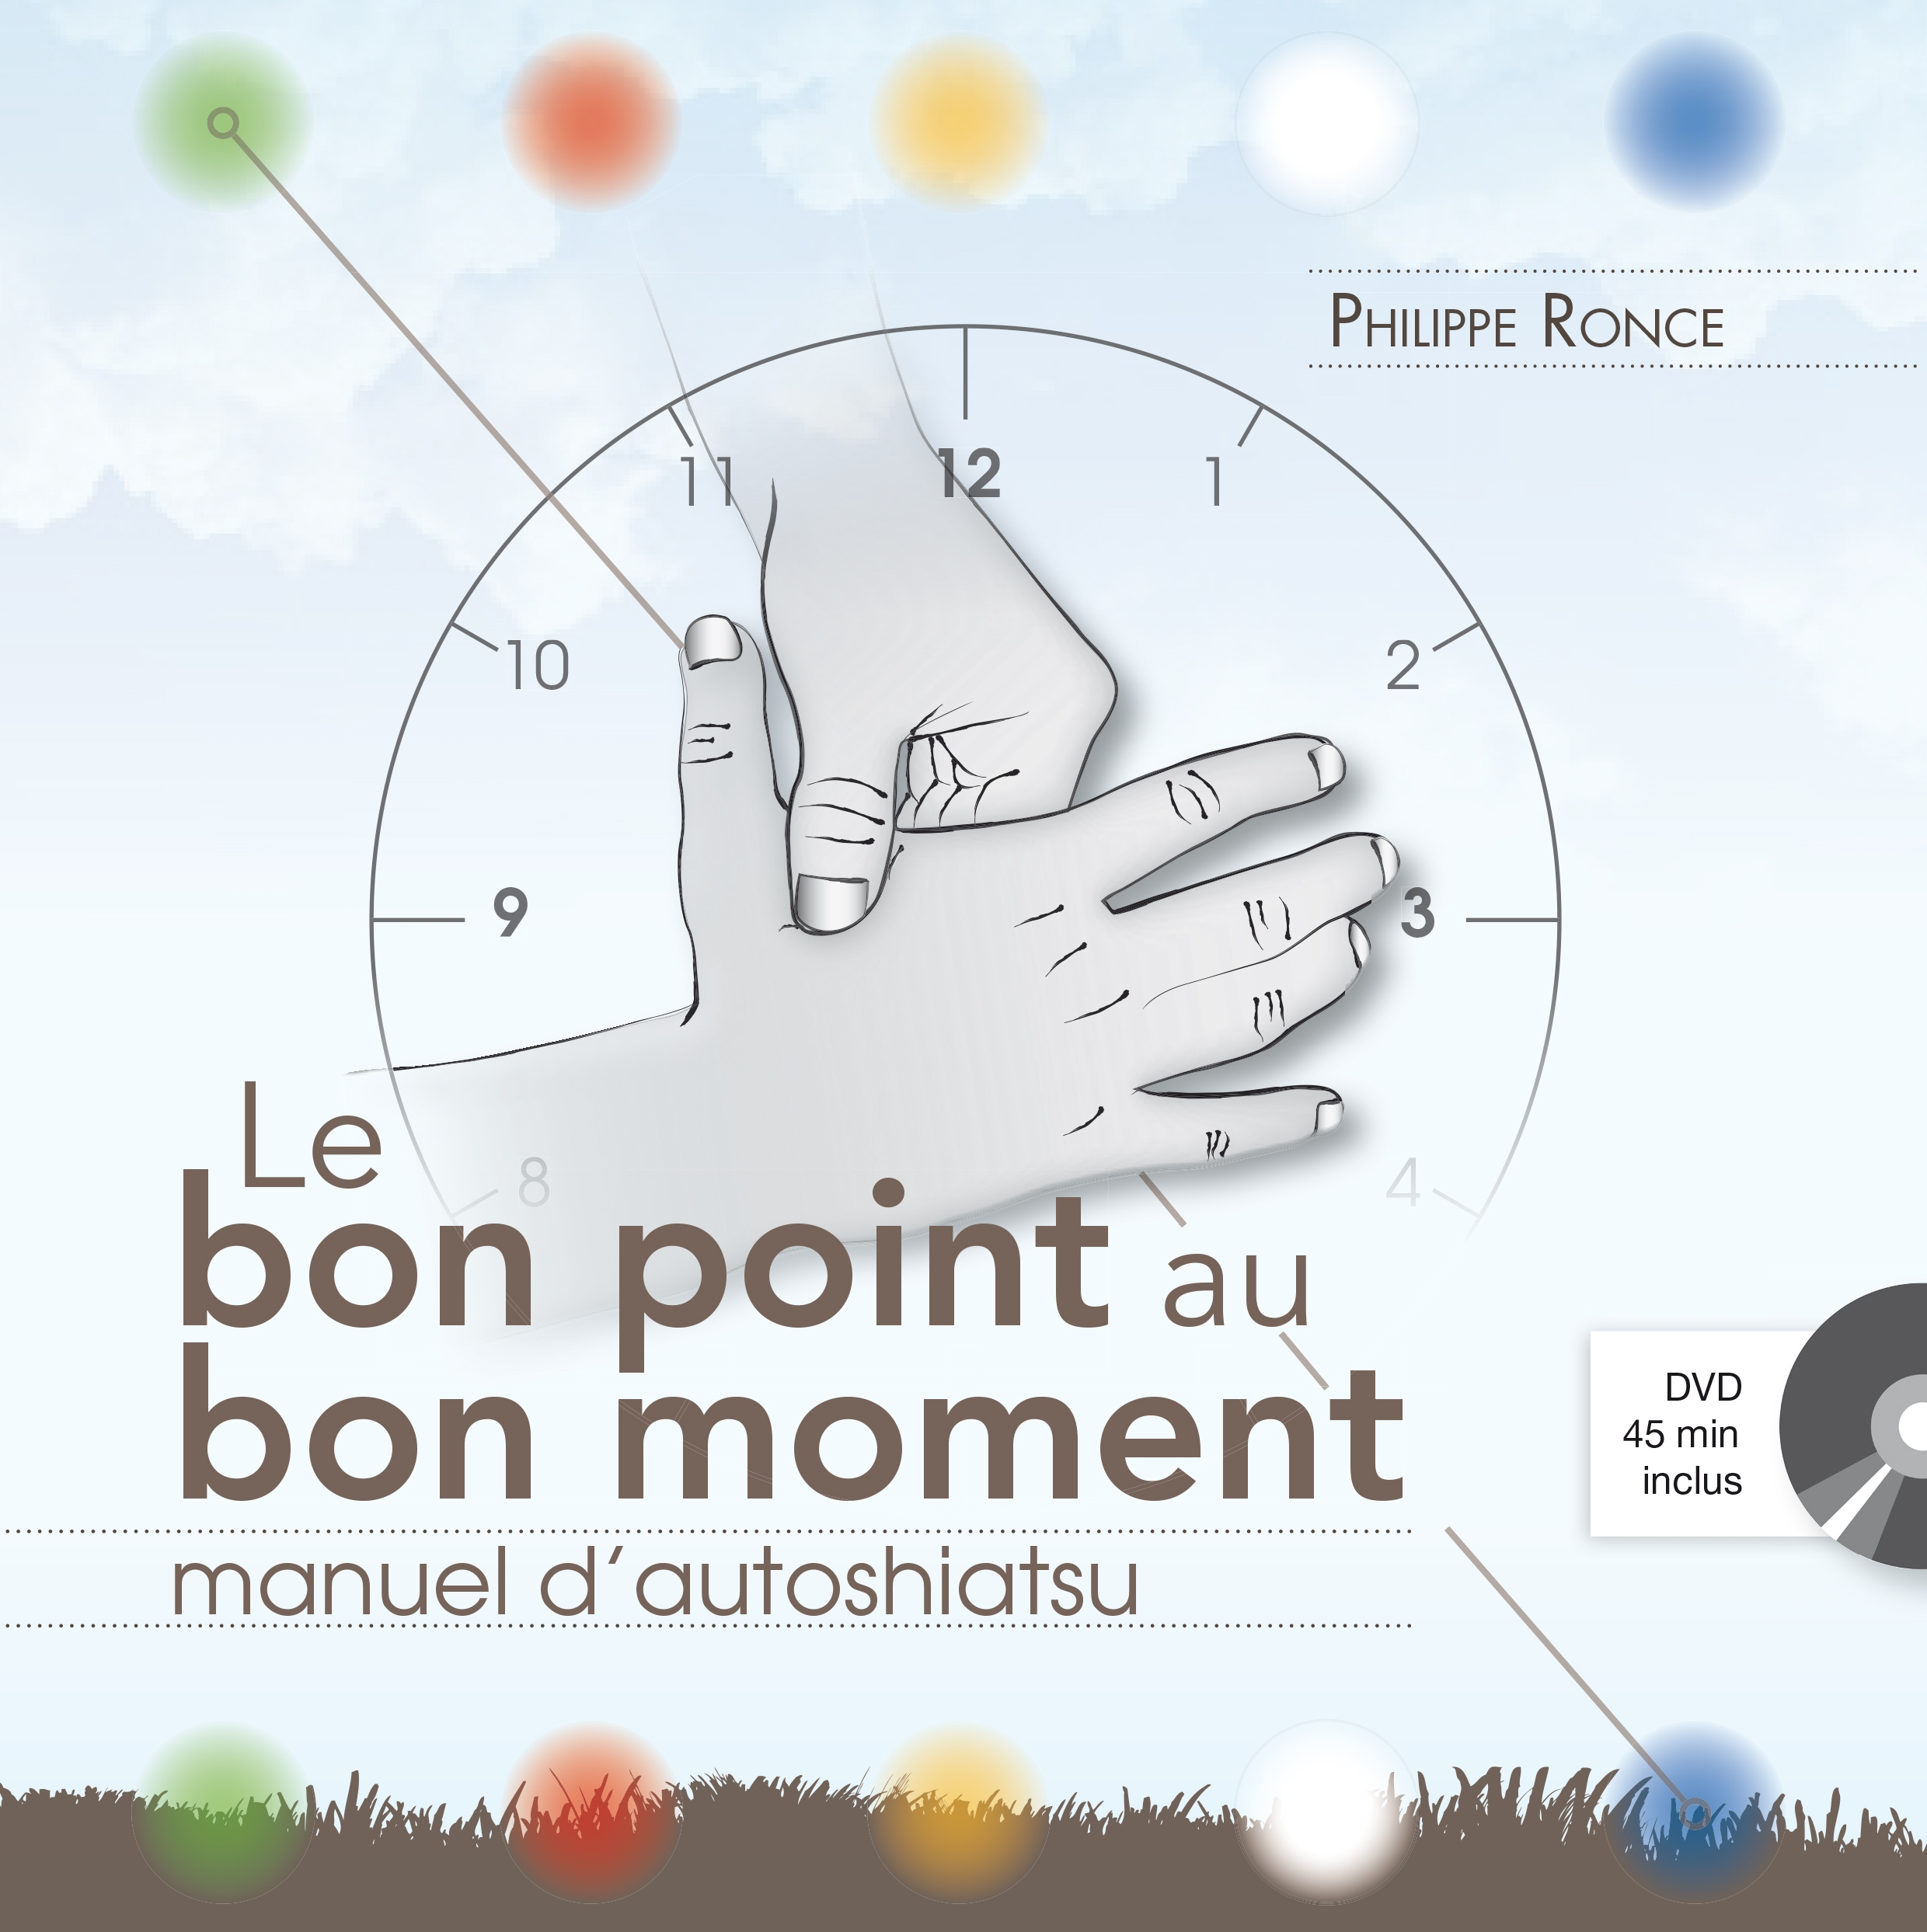 Philippe-Ronce-Le-bon-point-au-bon-moment